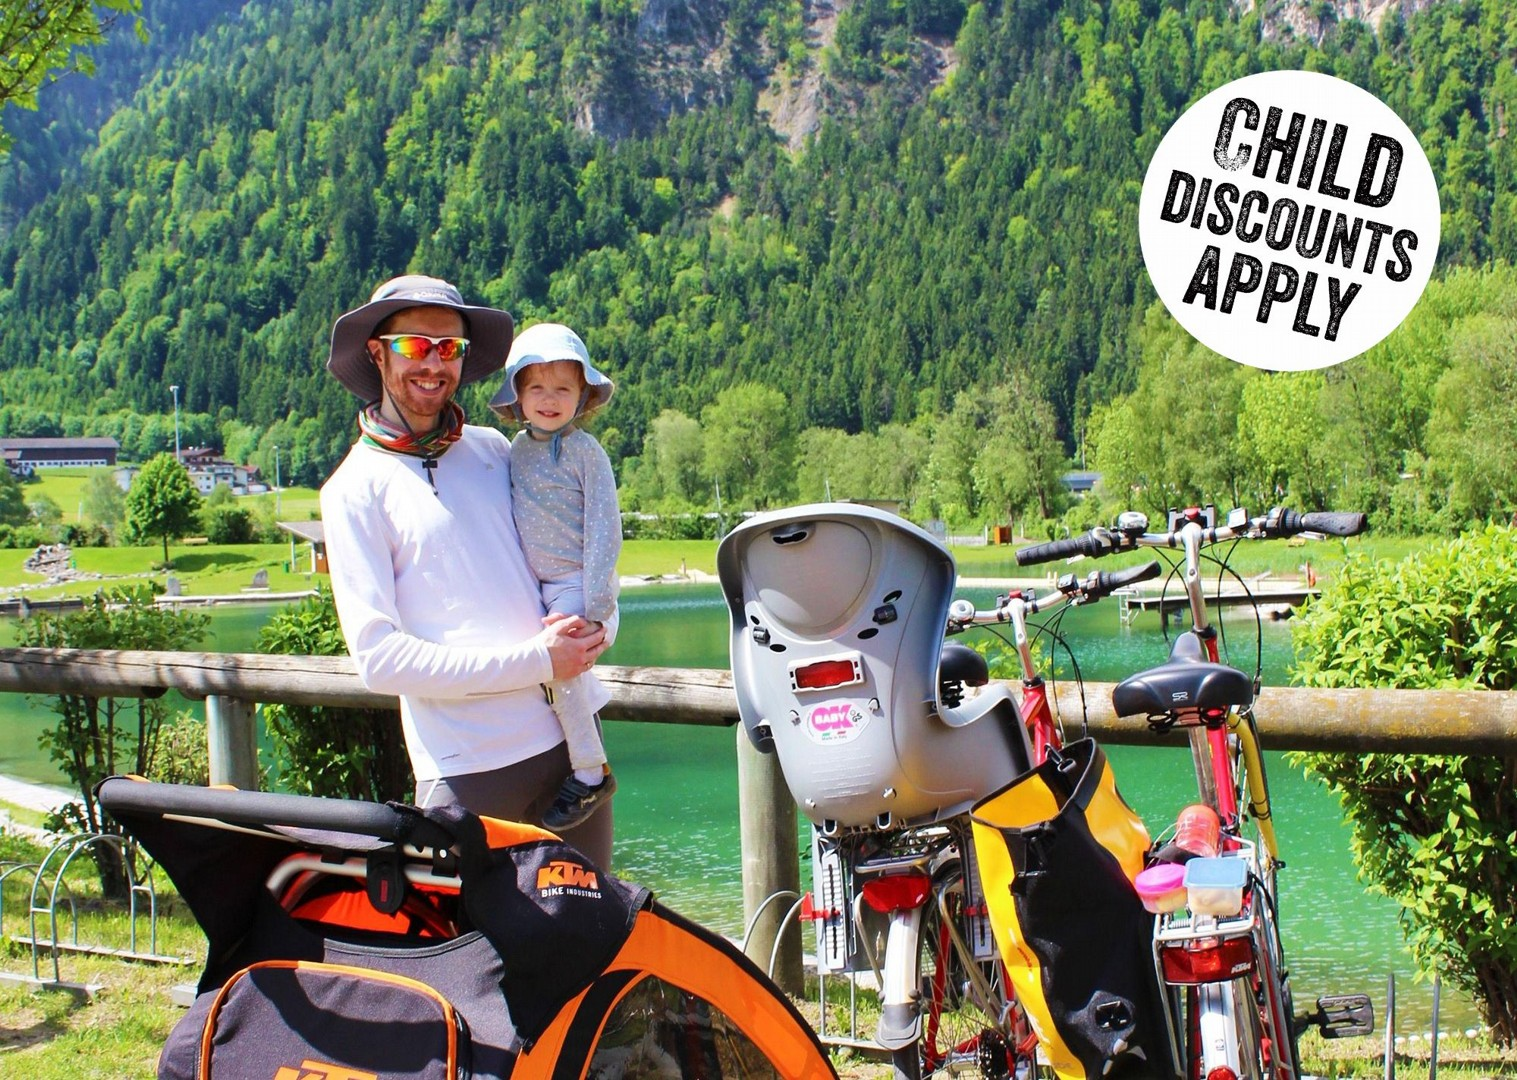 austria-self-guided-family-holiday-in-austria-tyrolean-valleys-austria.jpg - Austria - Tyrolean Valleys - Family Cycling